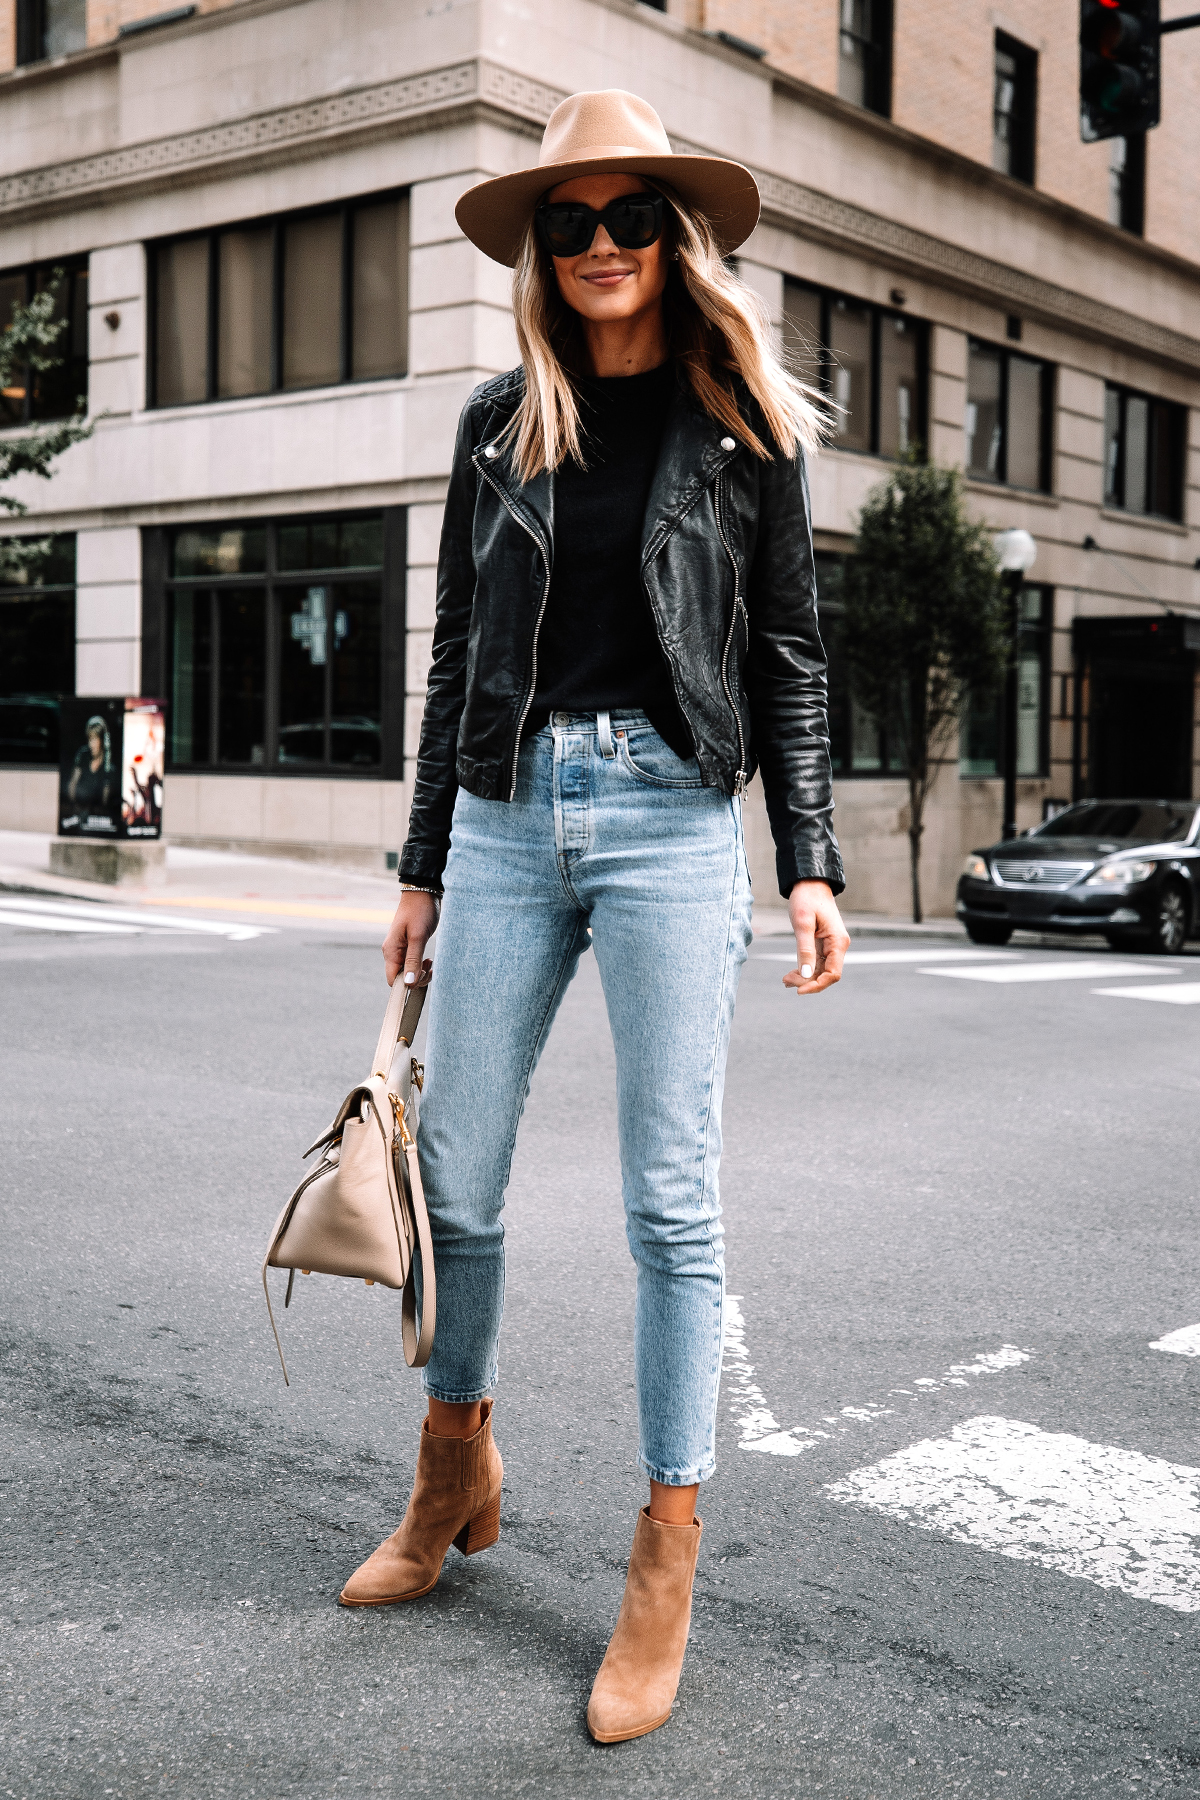 Fashion Jackson Wearing Madewell Black Leather Jacket Black Sweater Levis Jeans Tan Suede Booties Rag and Bone Tan Fall Hat Street Style